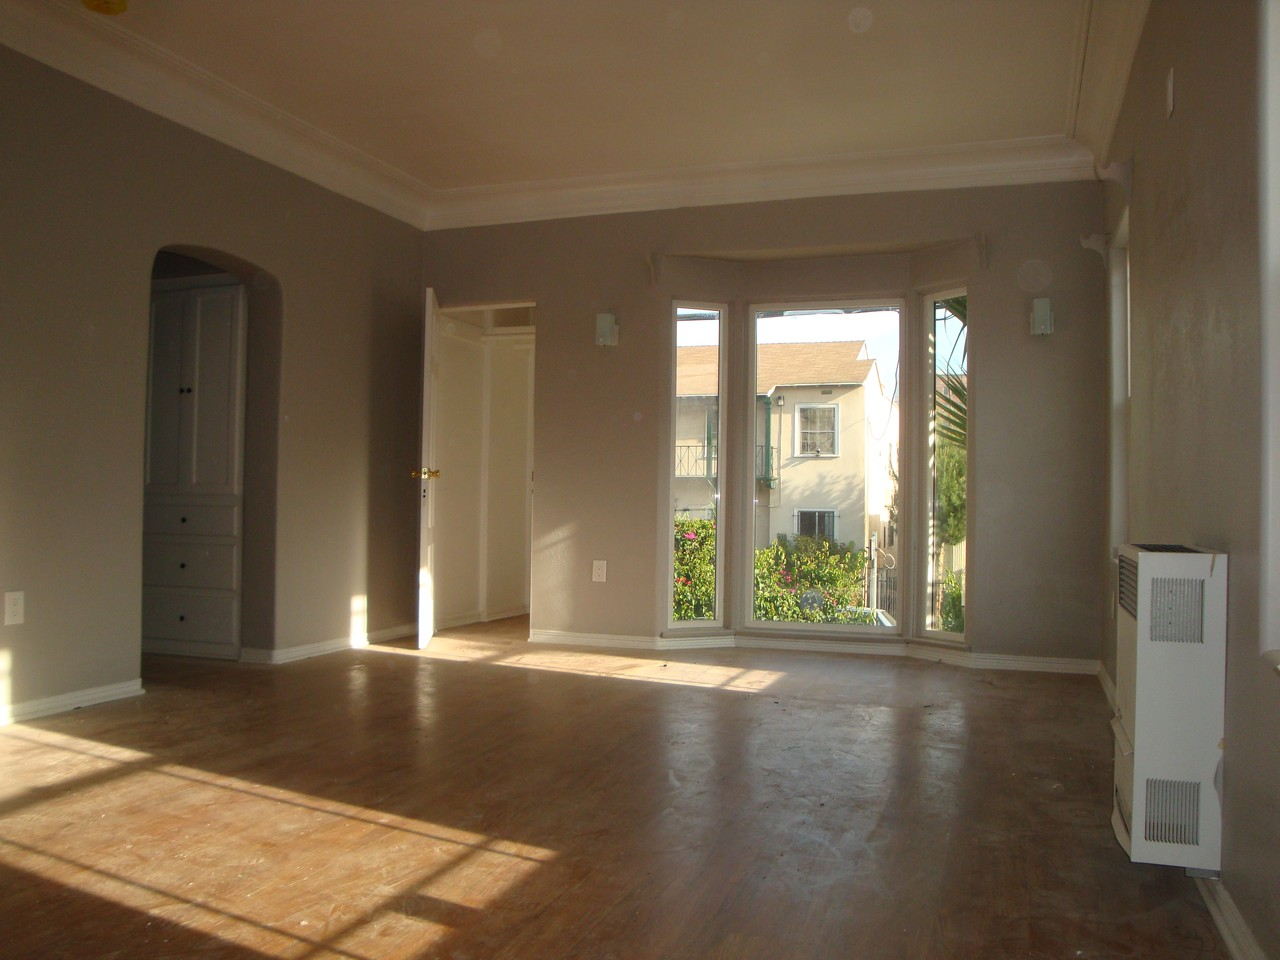 1803 West Maryland Street, Los Angeles, CA 90057 1 Bedroom Apartment ...